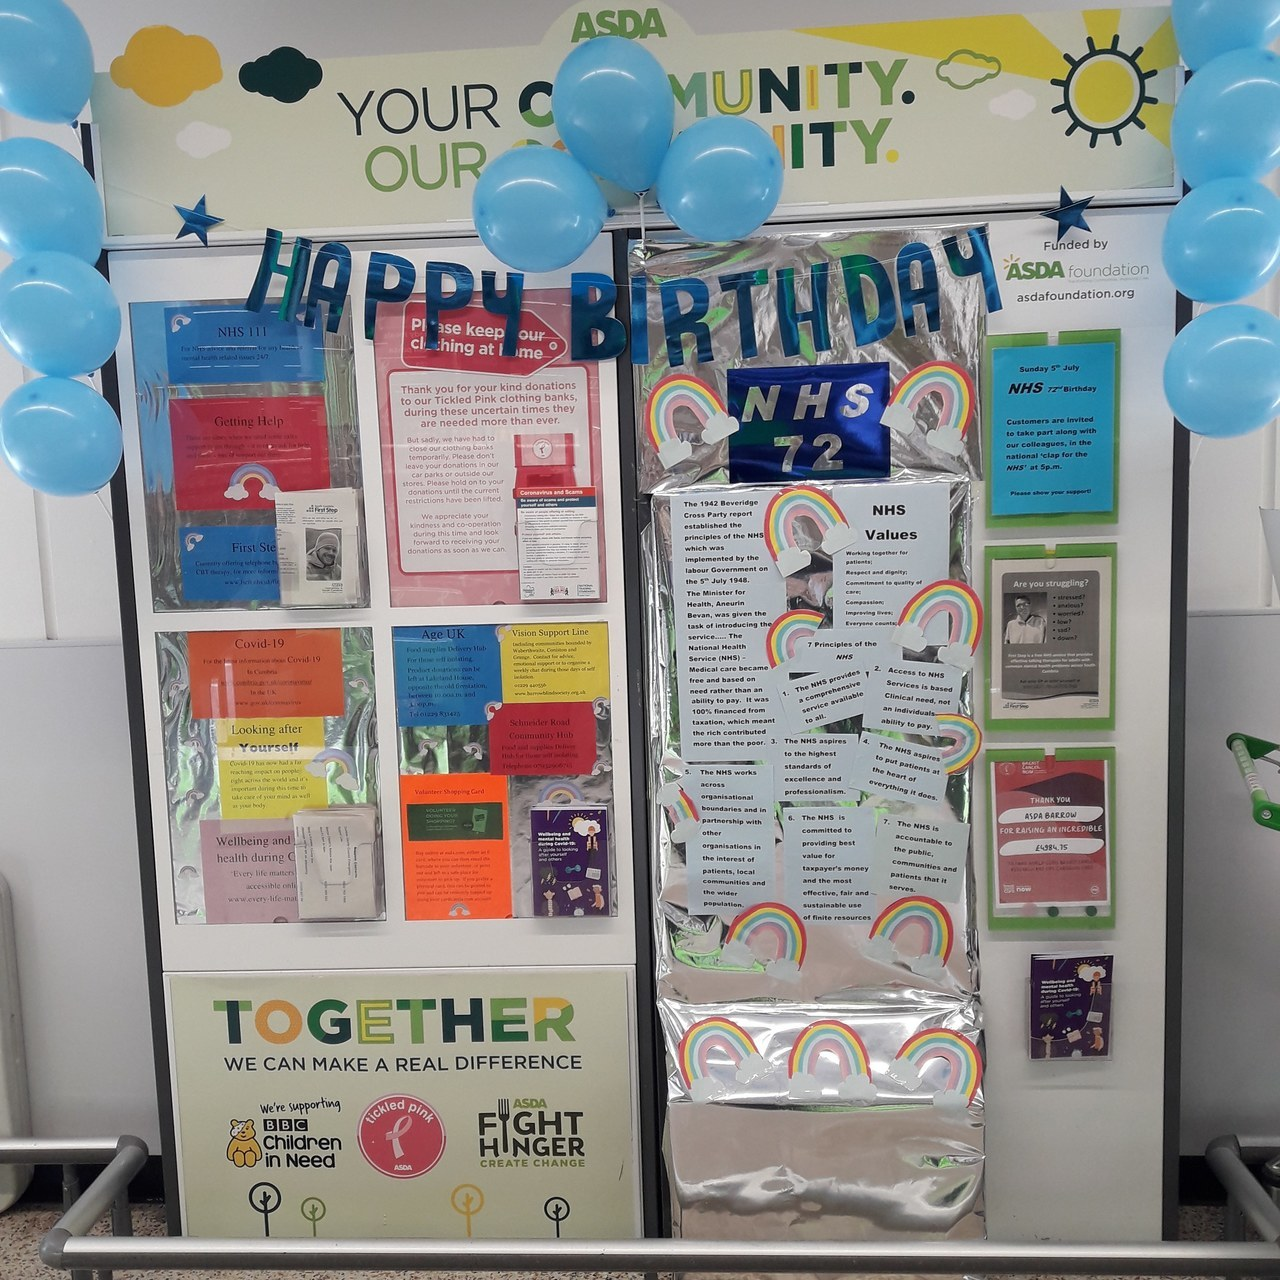 Happy 72nd birthday NHS! | Asda Barrow